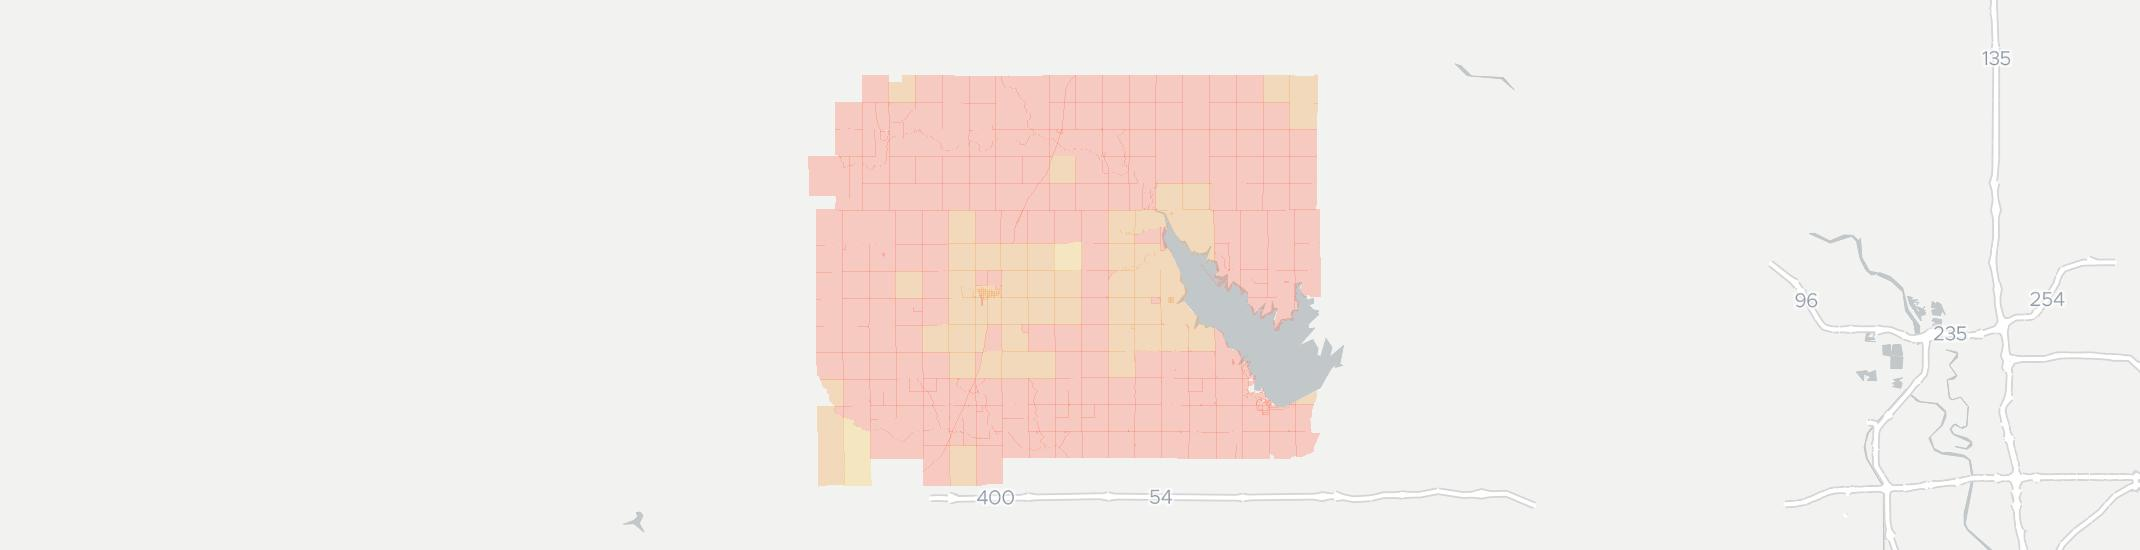 Pretty Prairie Internet Competition Map. Click for interactive map.